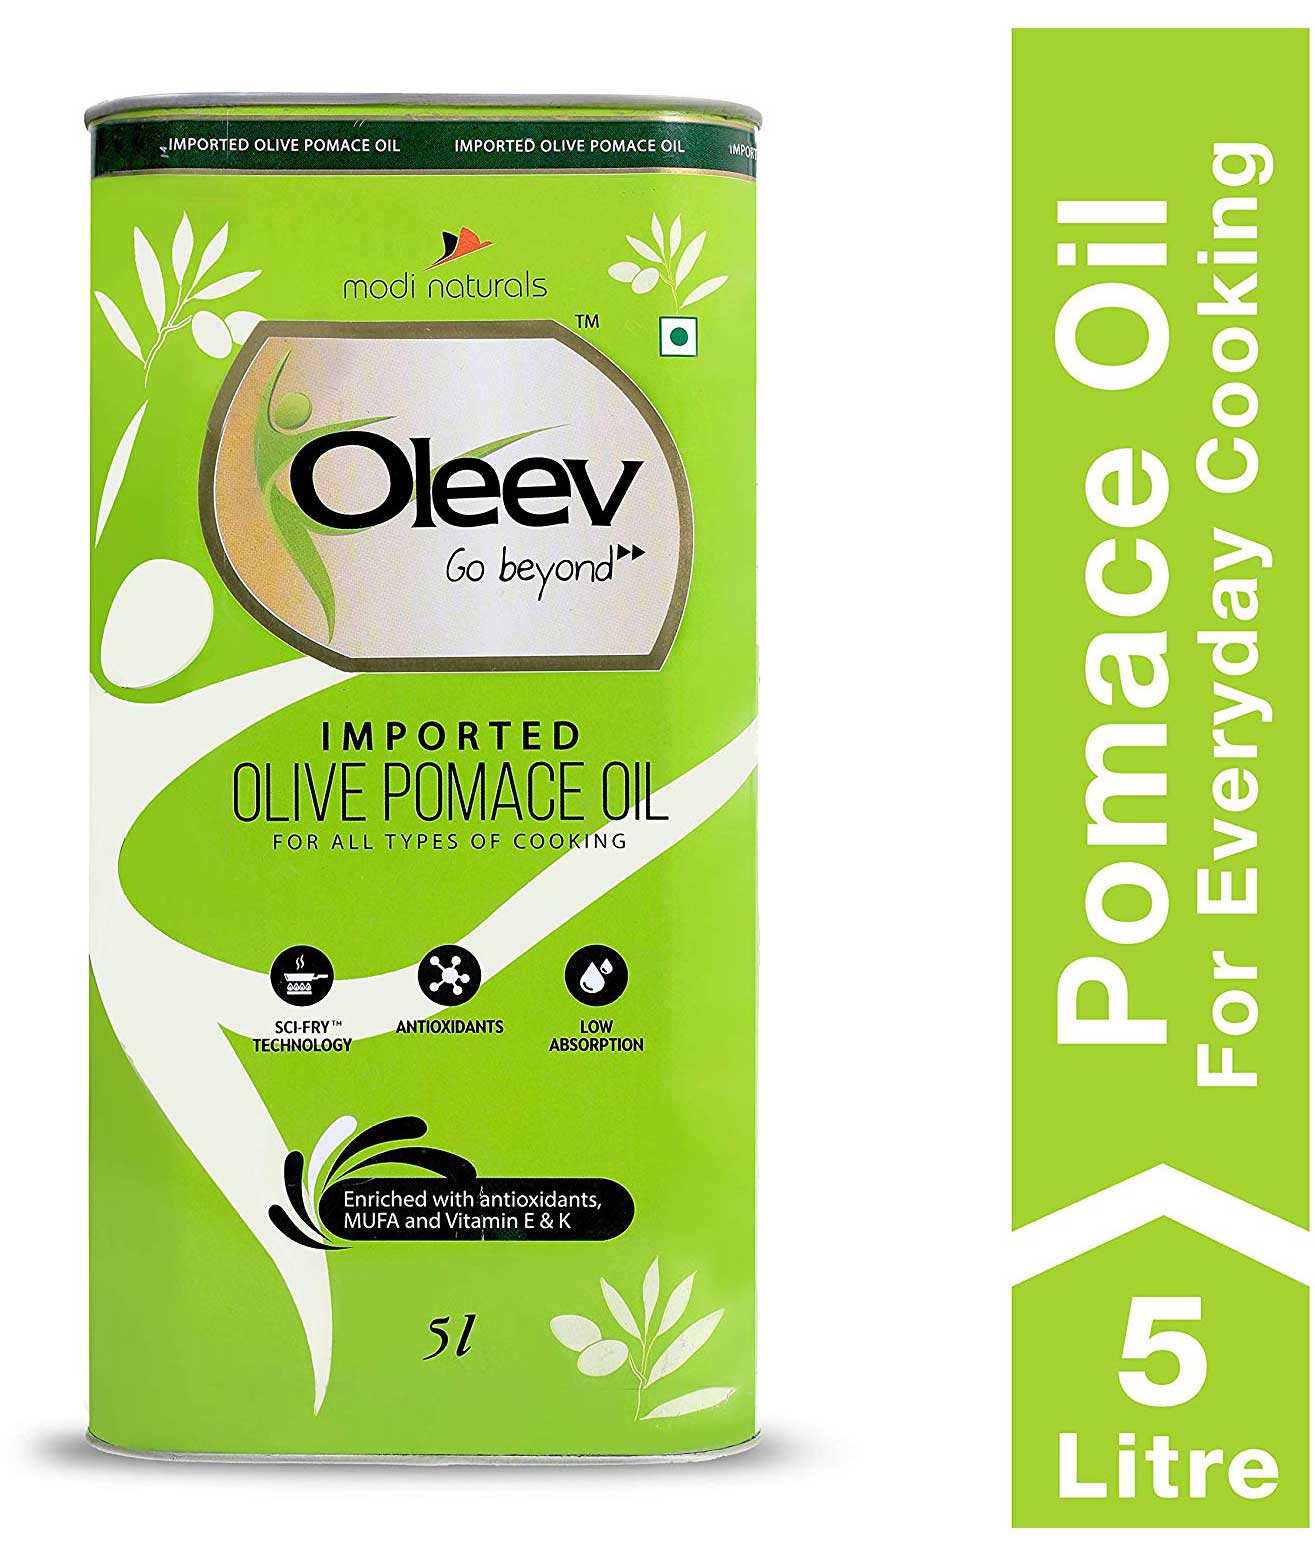 Oleev Olive Pomace Oil, for Everyday Healthy Cooking, Tin, 5L